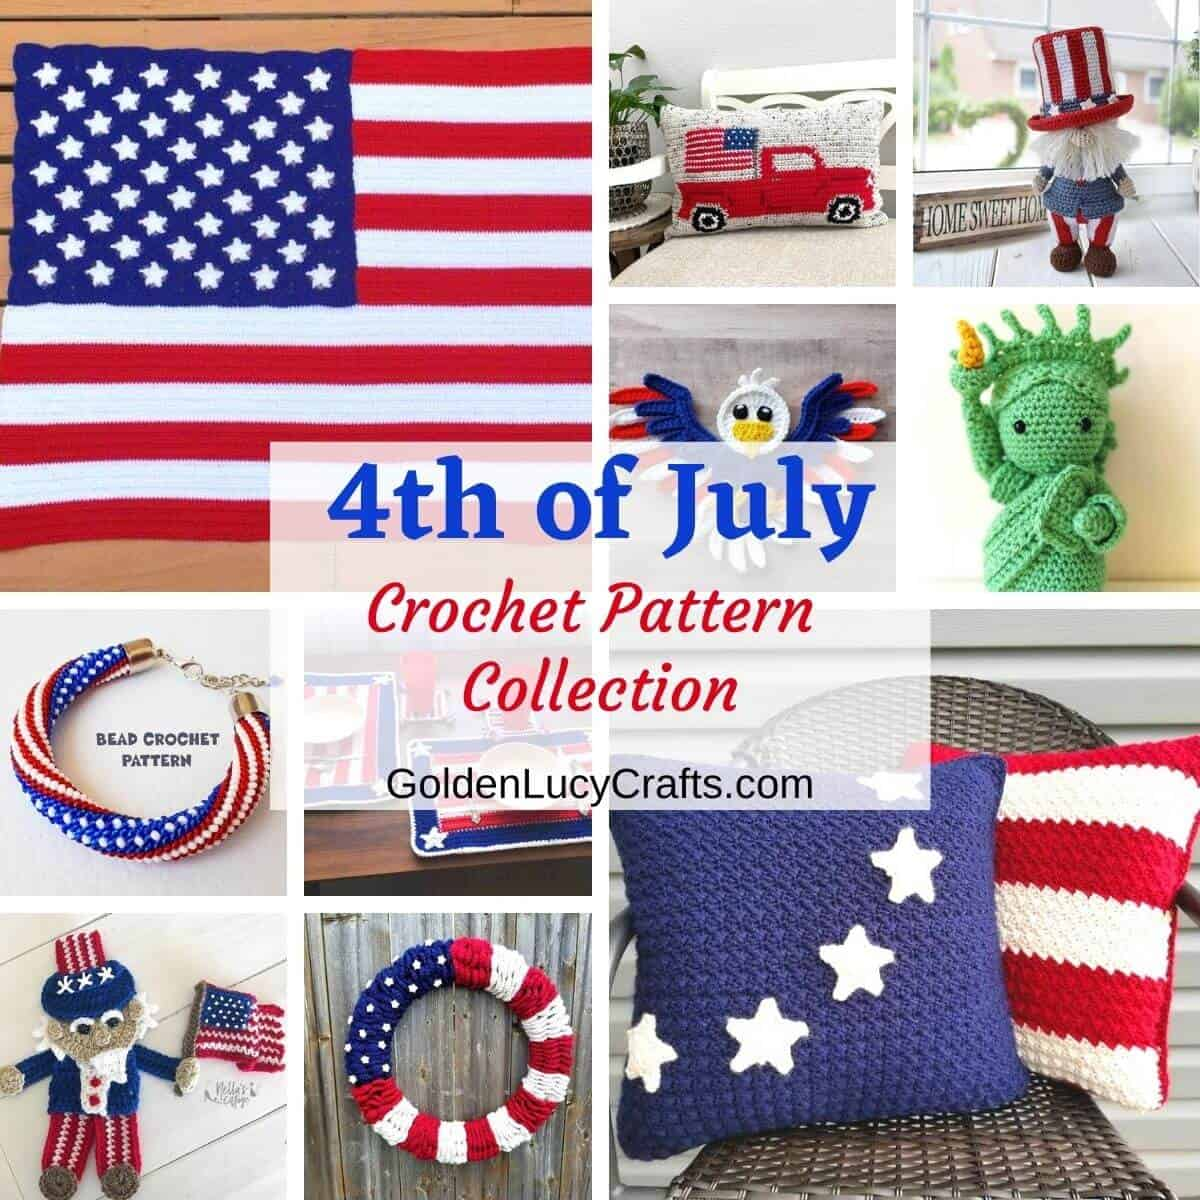 Photo collage of crocheted items for the 4th of July.